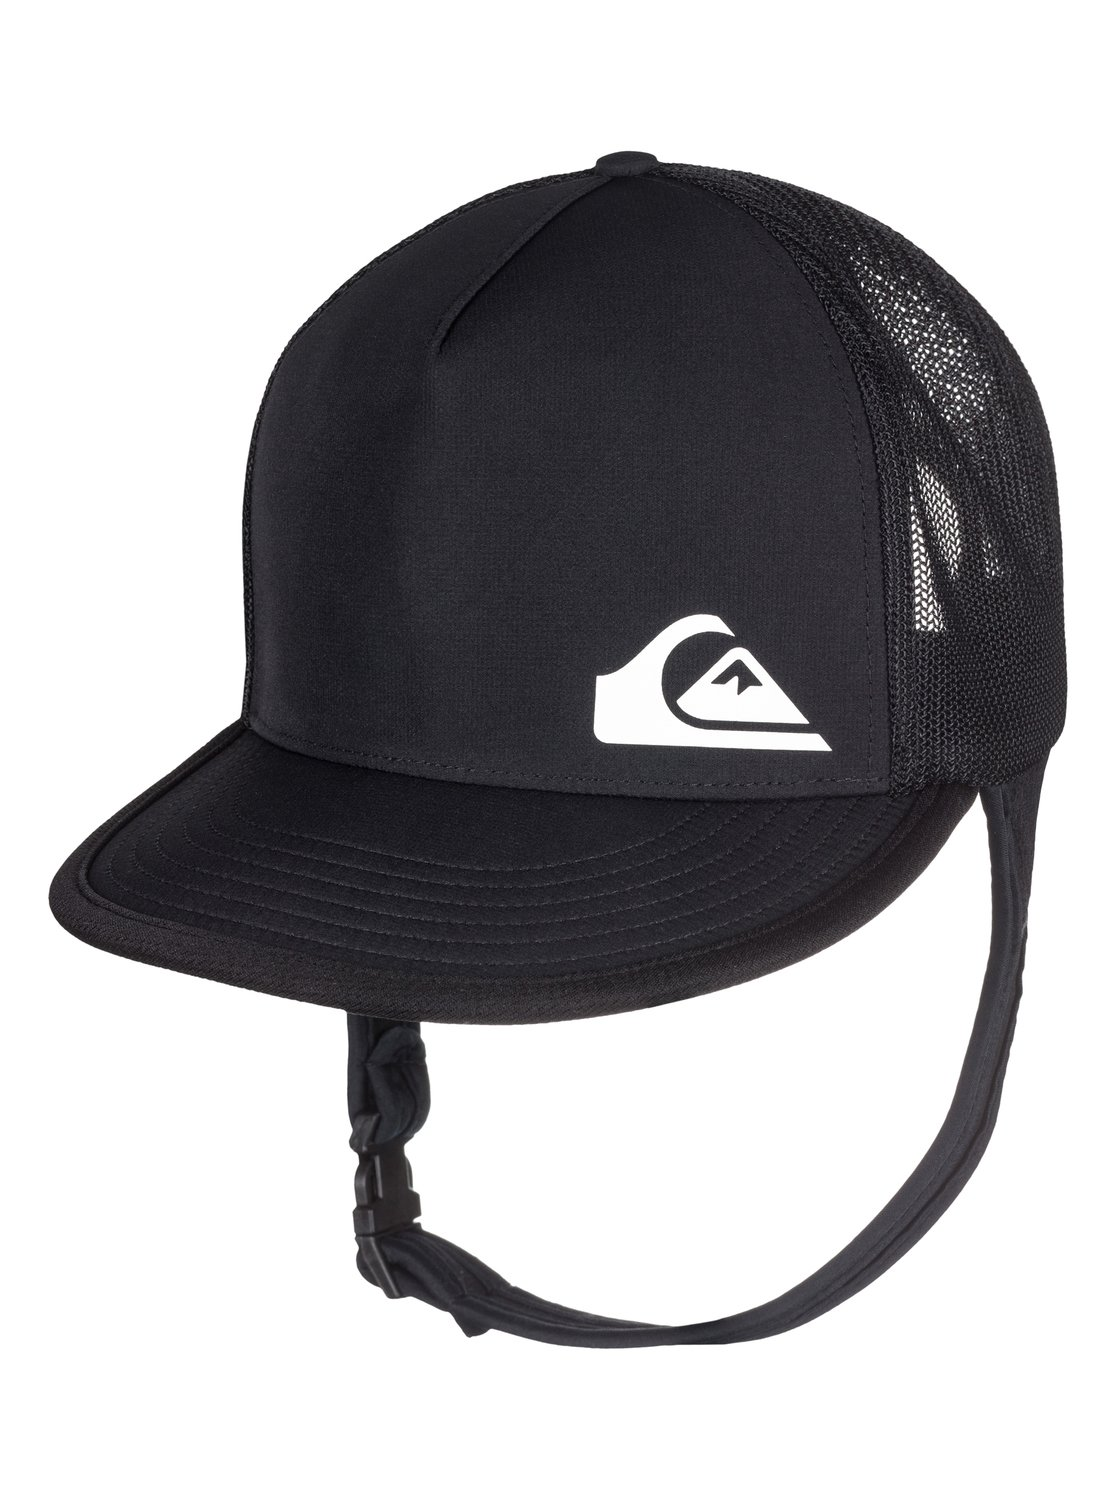 cce3e72bda6 Quiksilver™ Trim Shader - Surf Cap - Men - ONE SIZE - Black ...